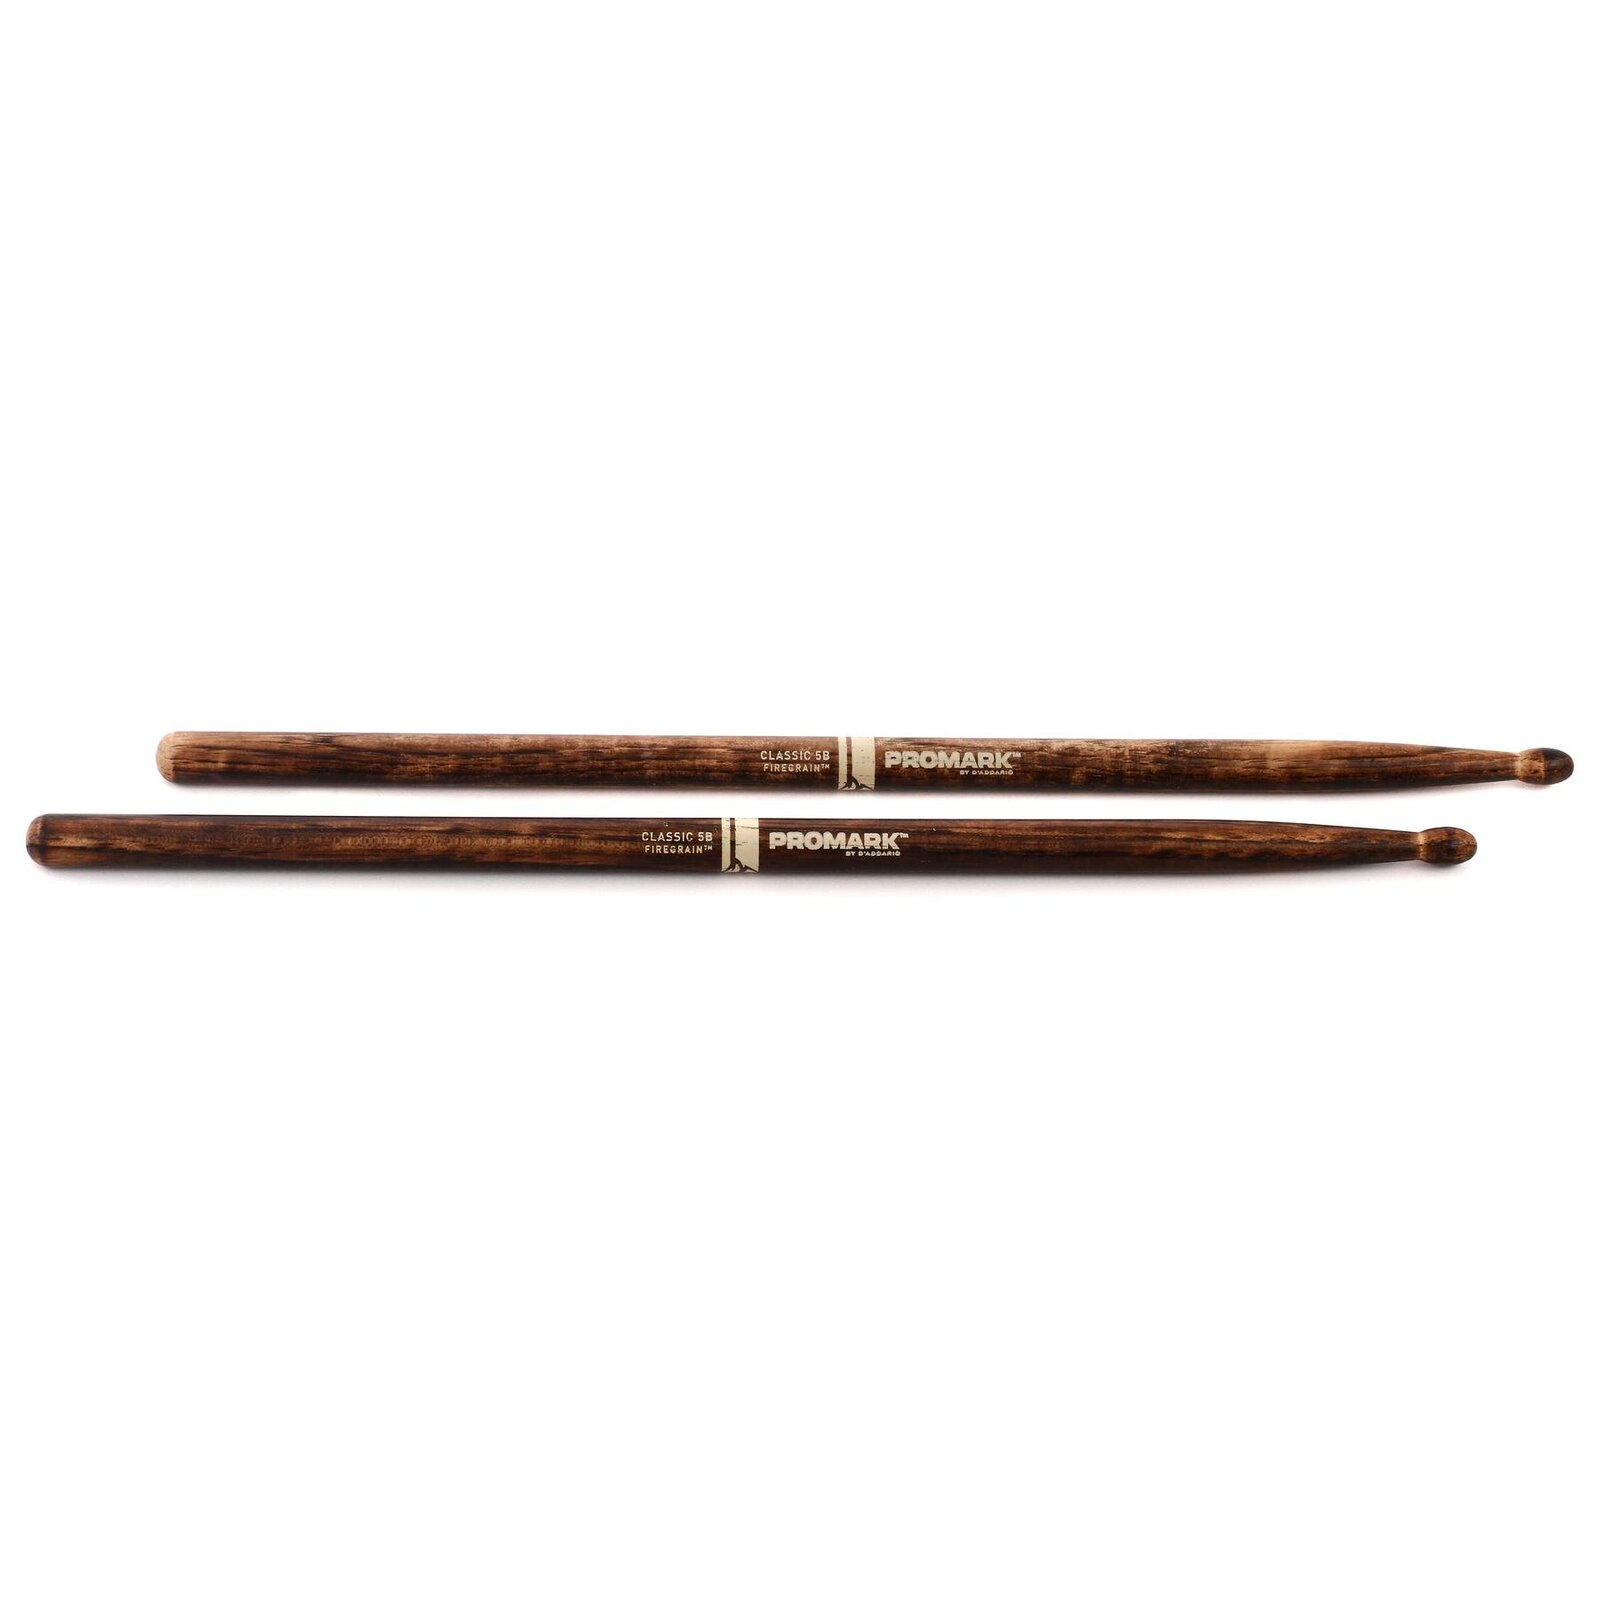 Promark Firegrain Classic 5BW Wood Tip Drum Sticks